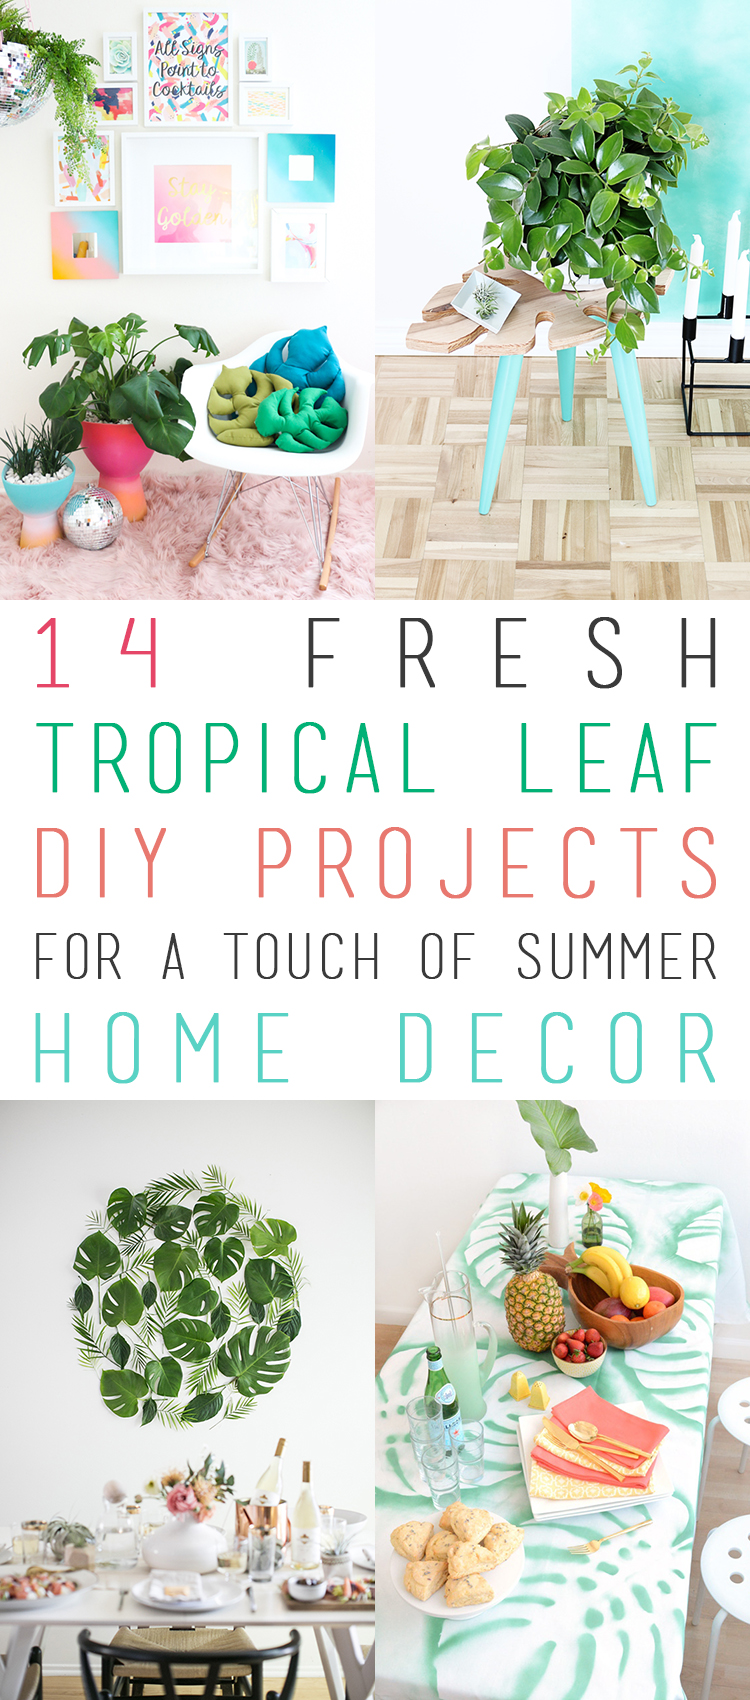 3 Home Decor Trends For Spring Brittany Stager: 14 Fresh Tropical Leaf DIY Projects For A Touch Of Summer